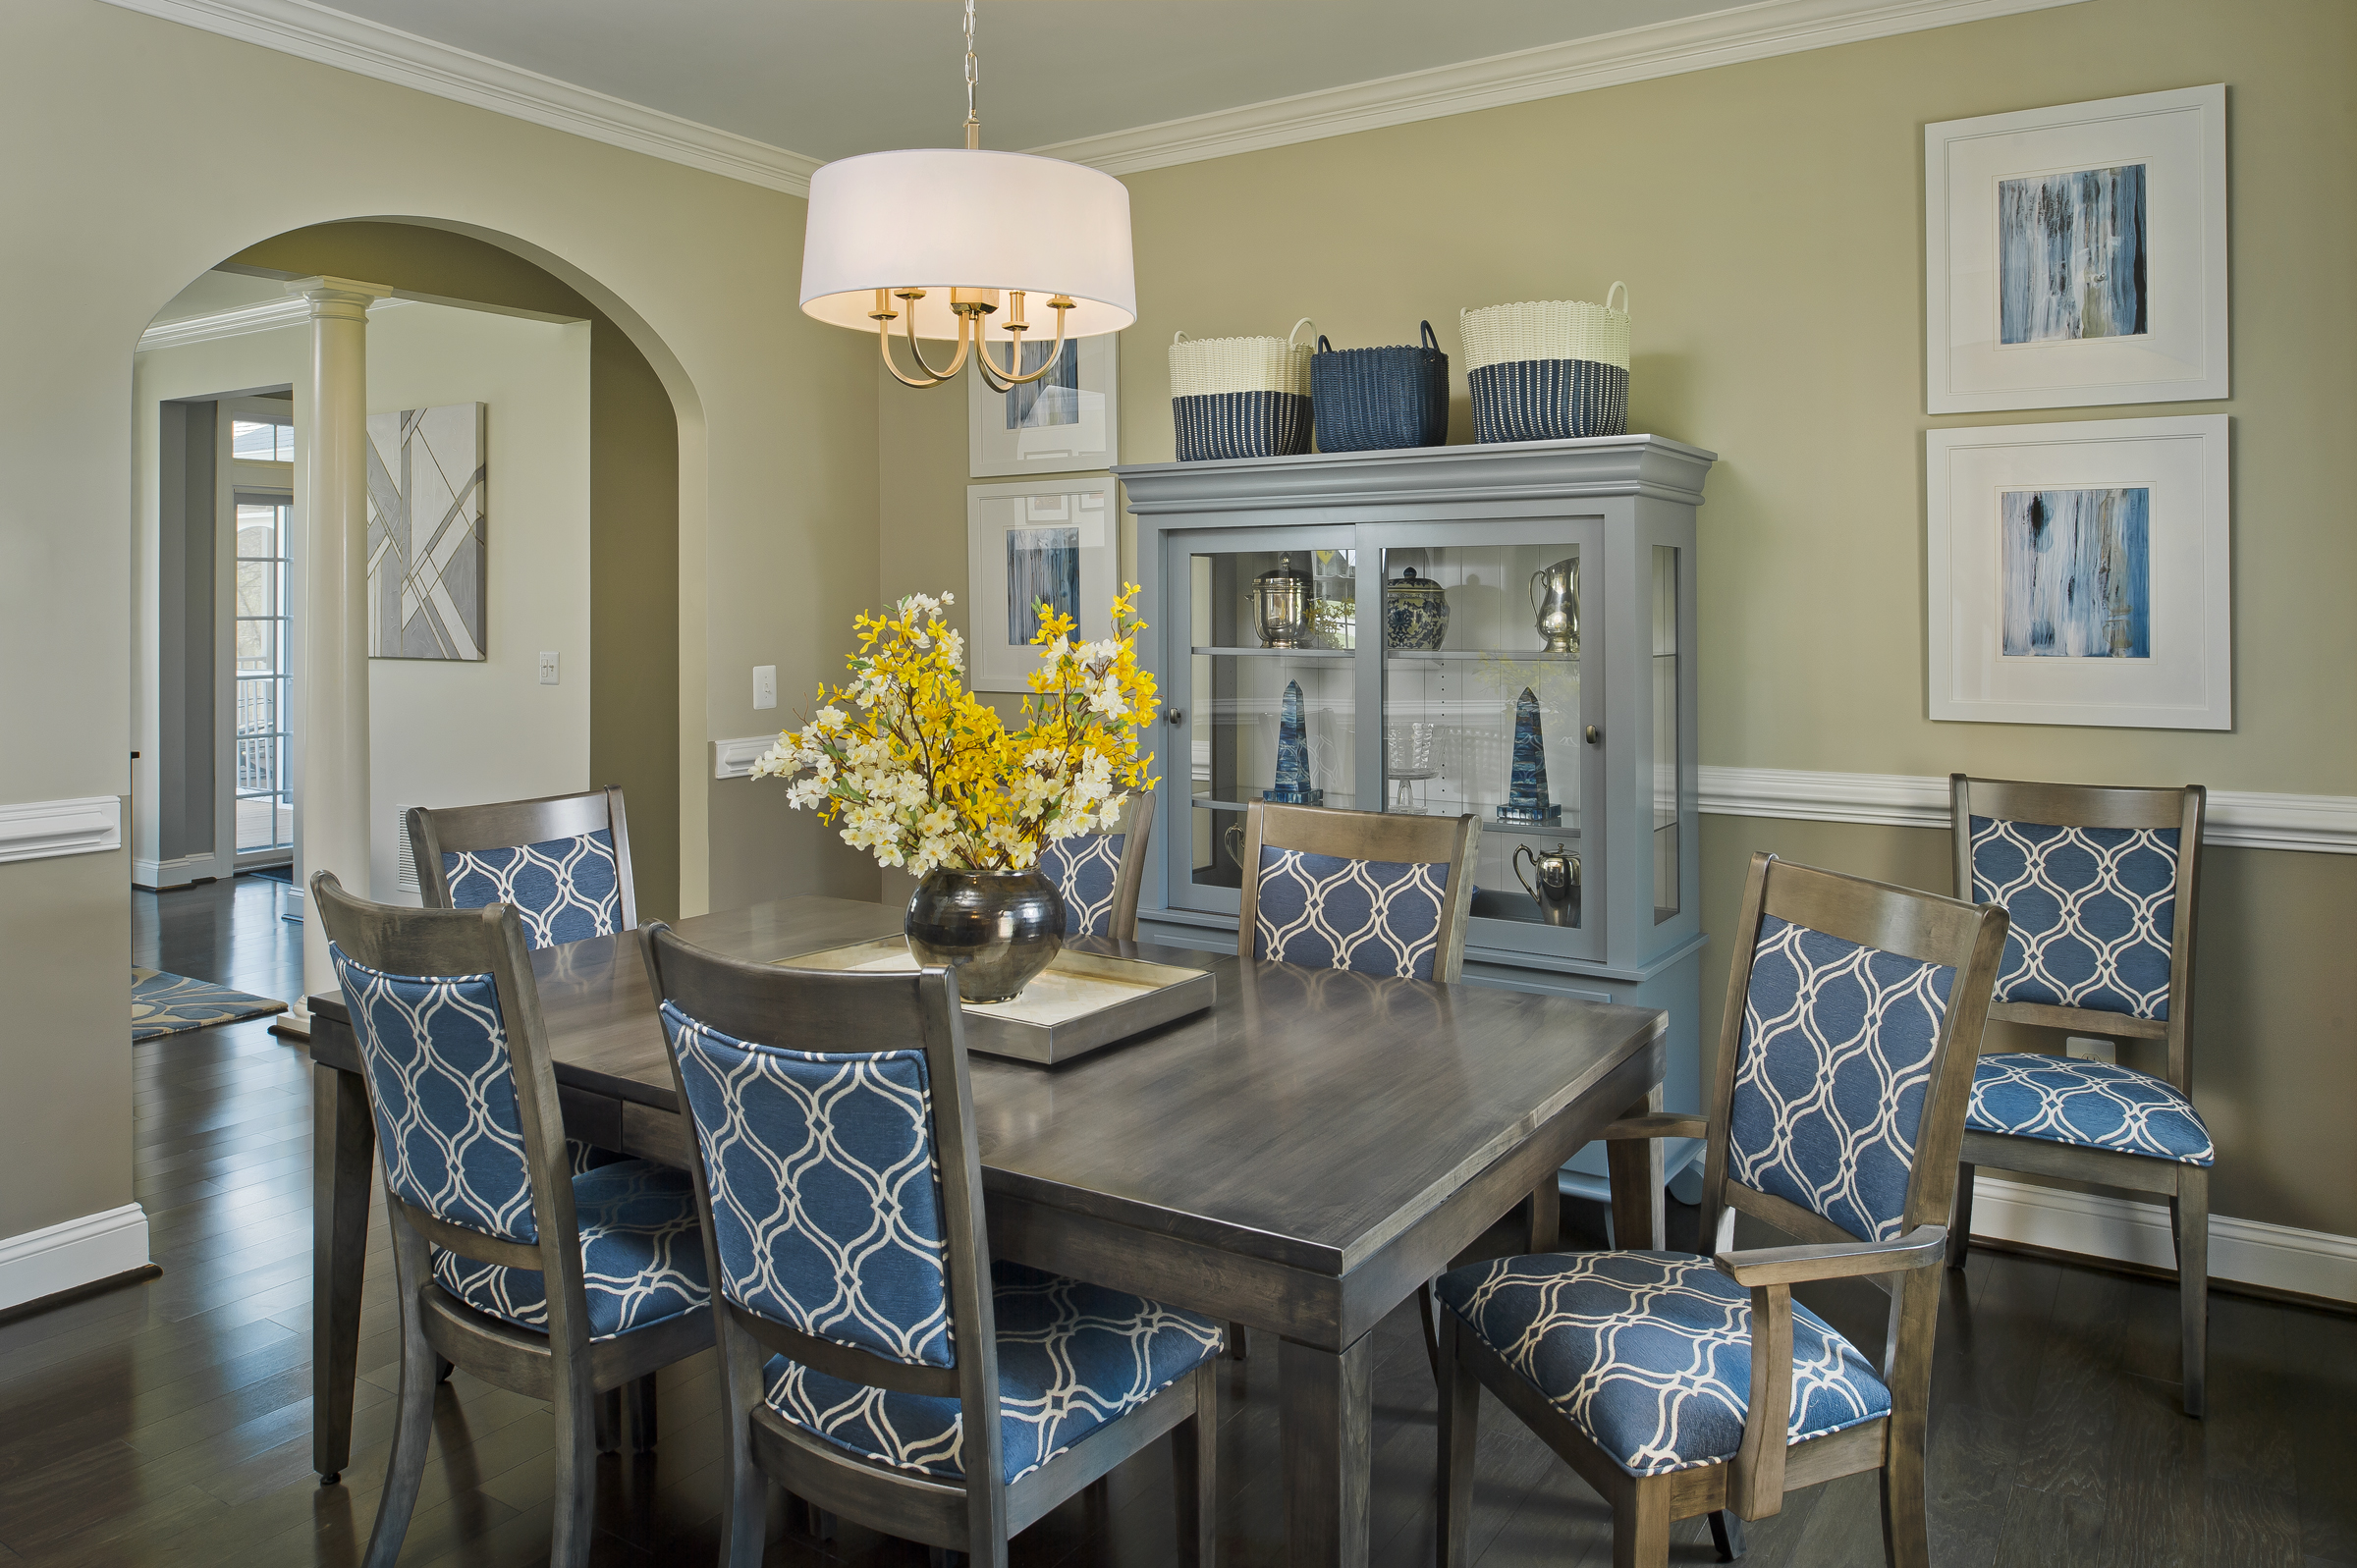 {A painted china cabinet houses the clients collections and complements the wood table nicely, without matching.  MacClinktock Drive  design by April Force Pardoe Interiors.}